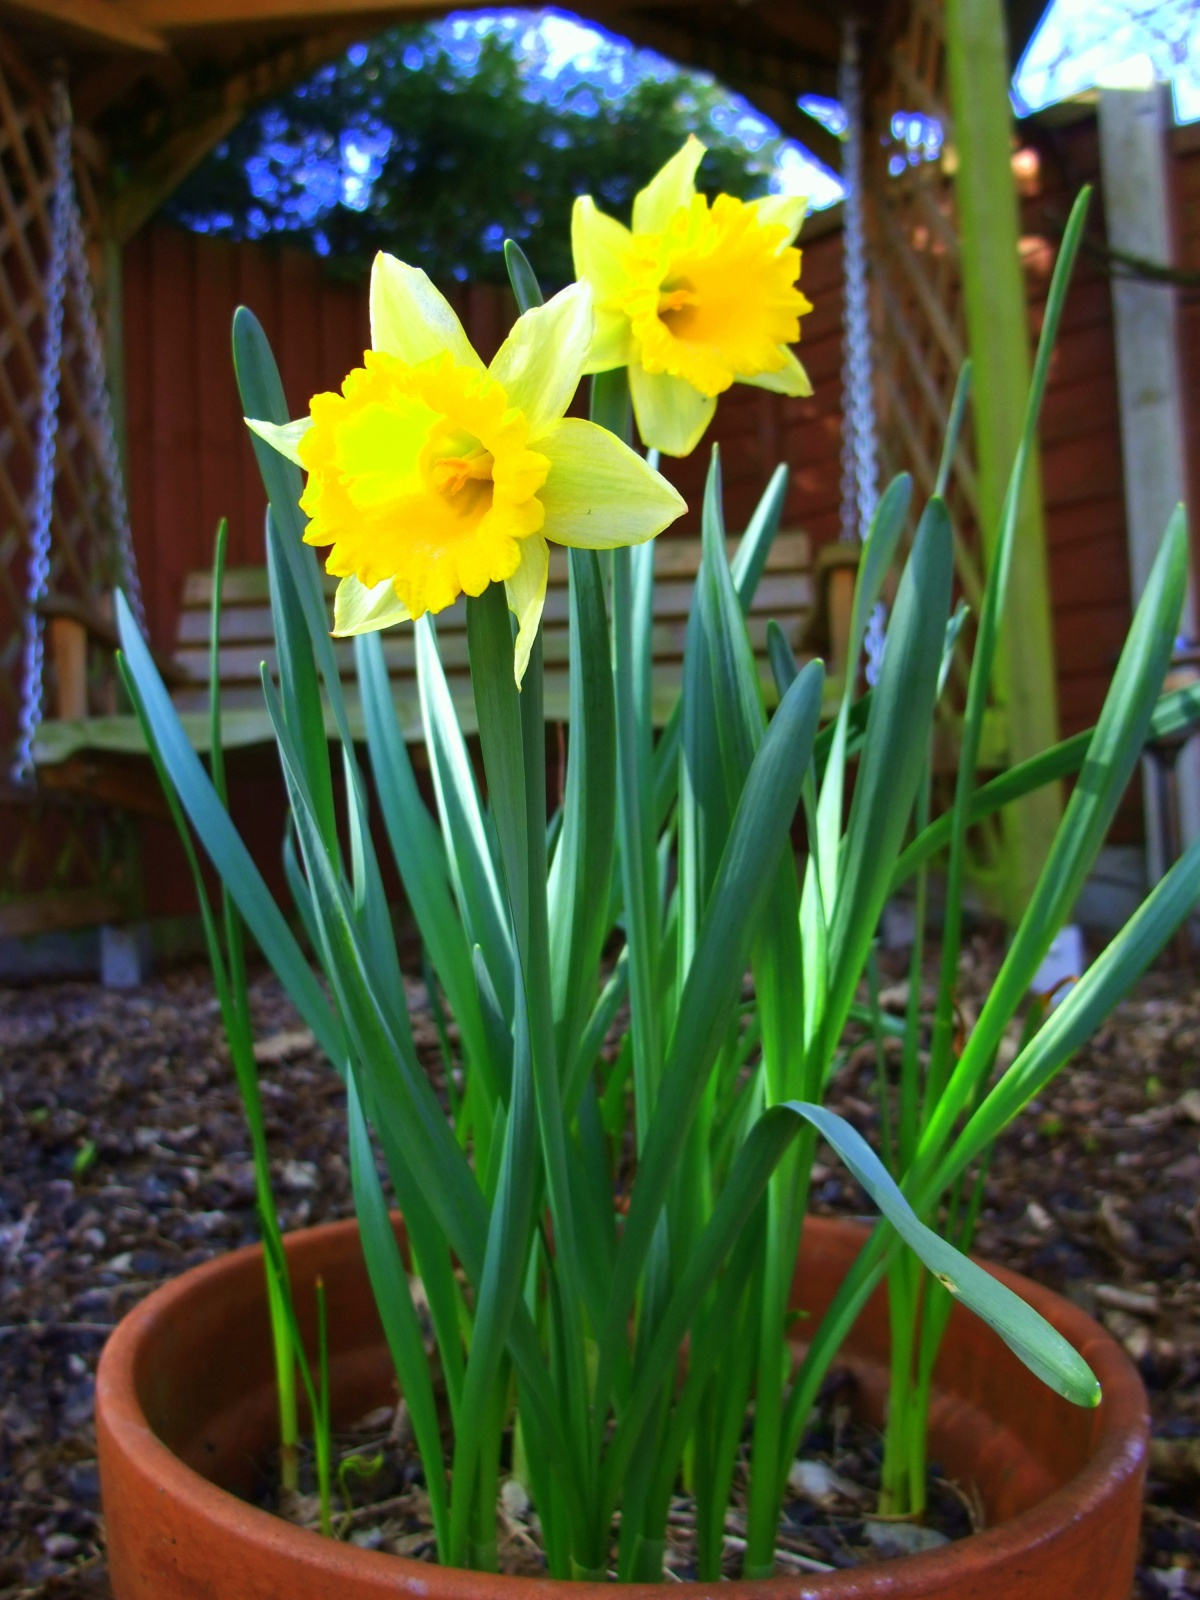 The daffs are back